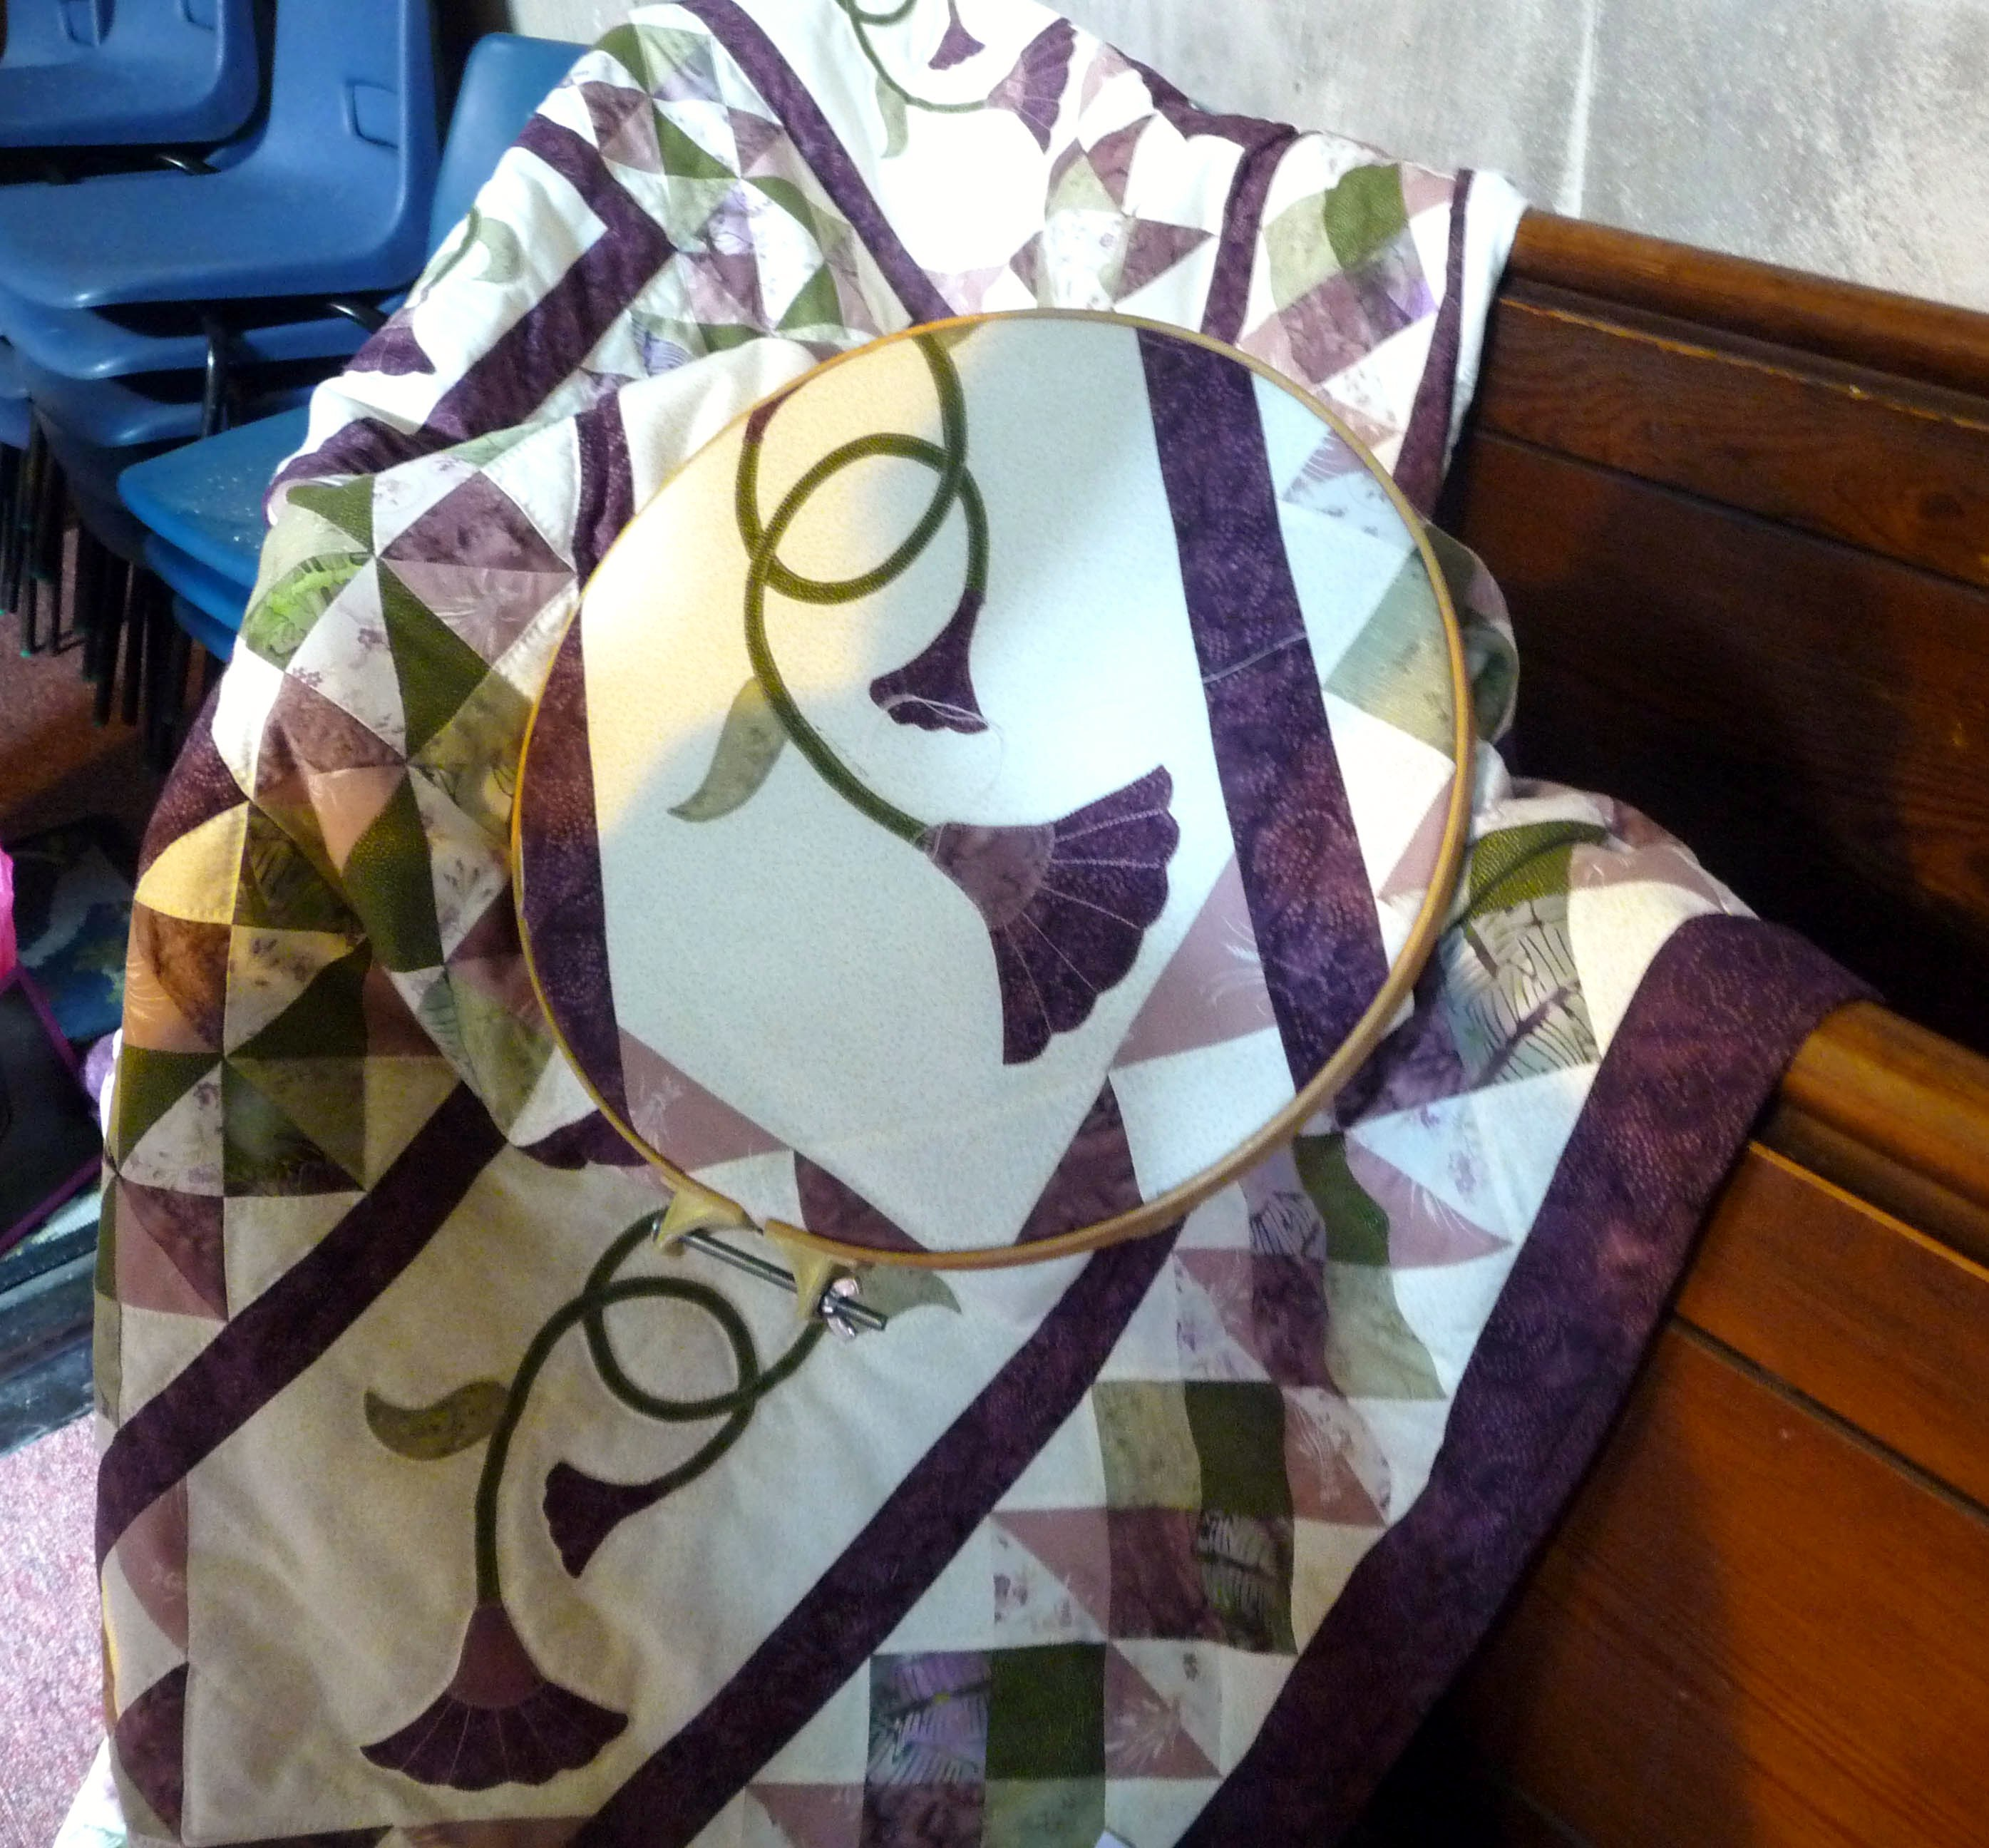 Quilt made by Margaret Smith, Allerton Piecemakers Group